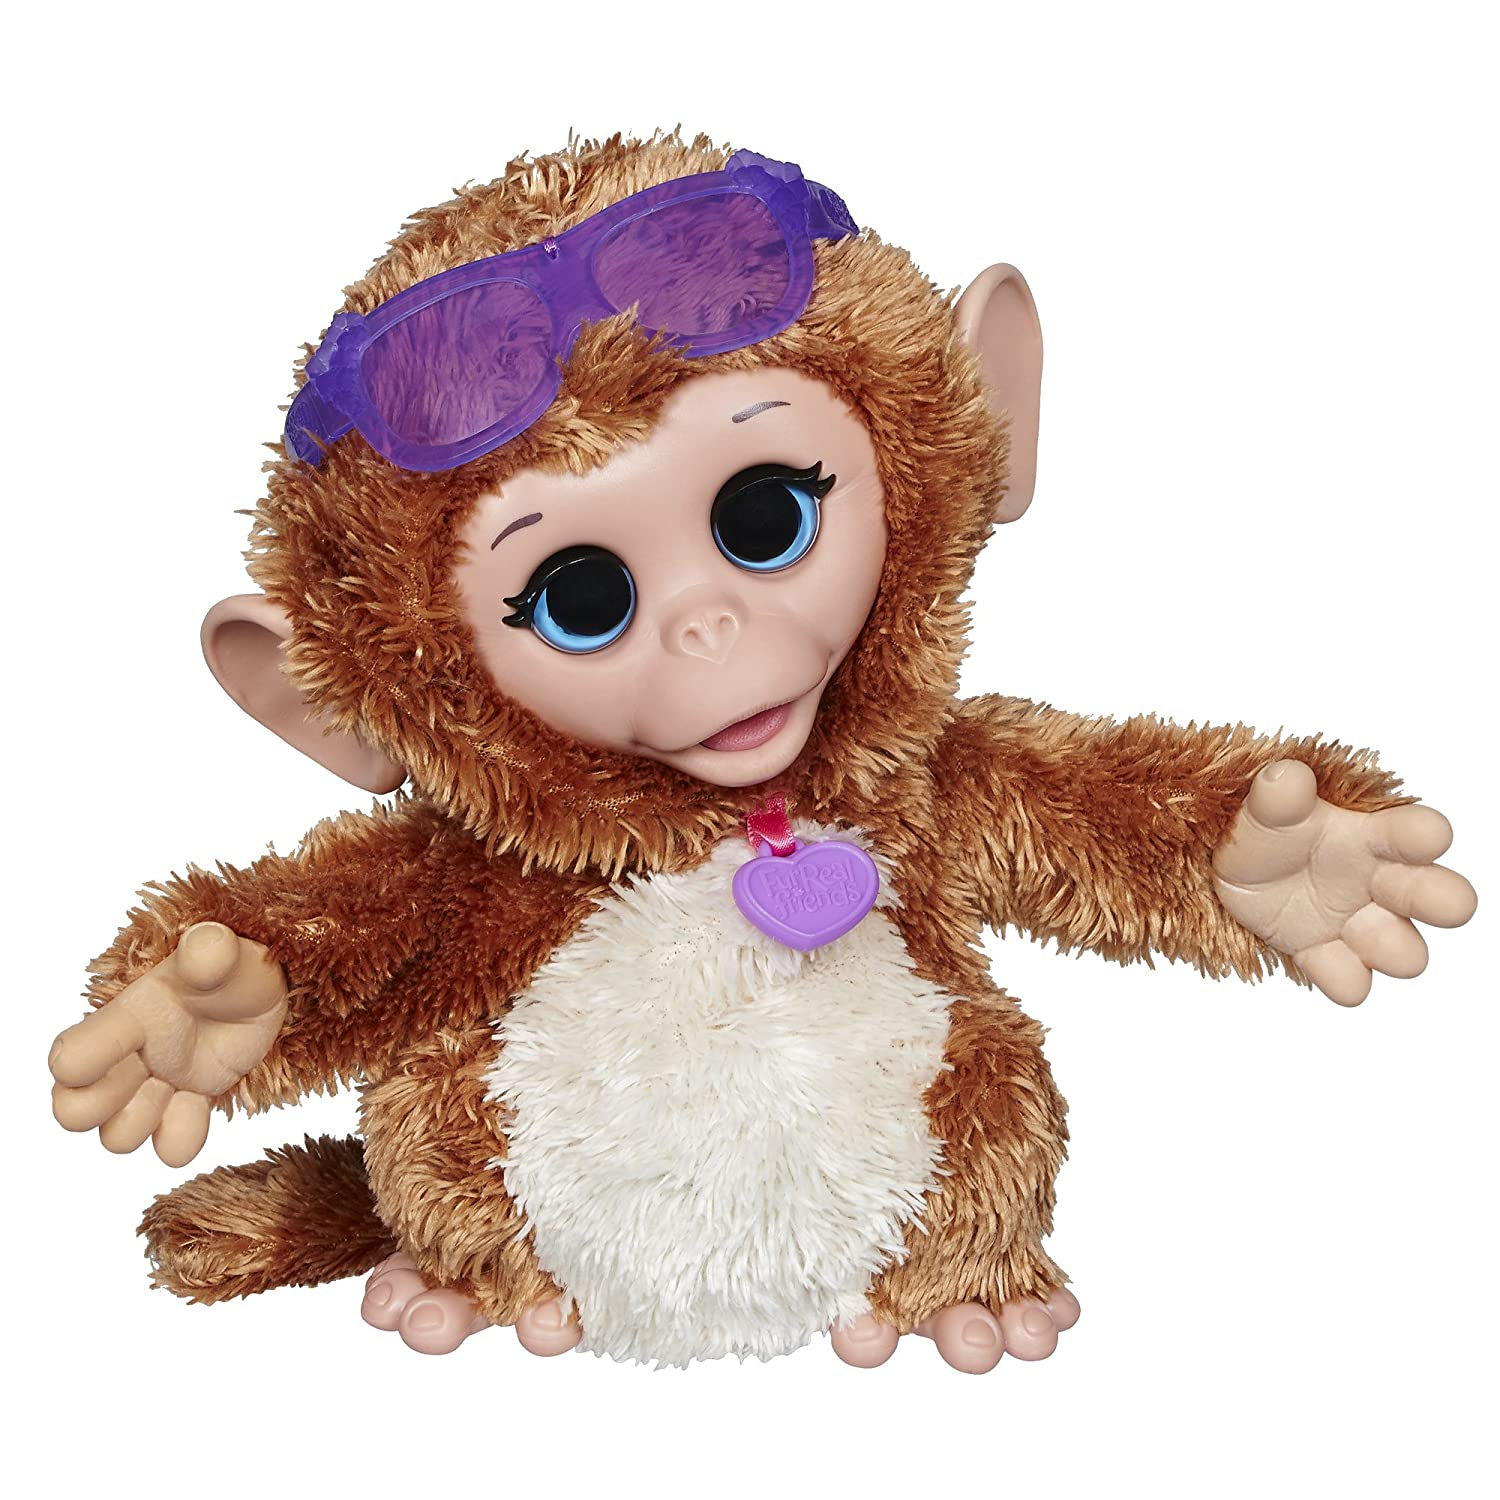 Mascota bebé de peluche Cuddles My Giggly Monkey de FurReal Friends